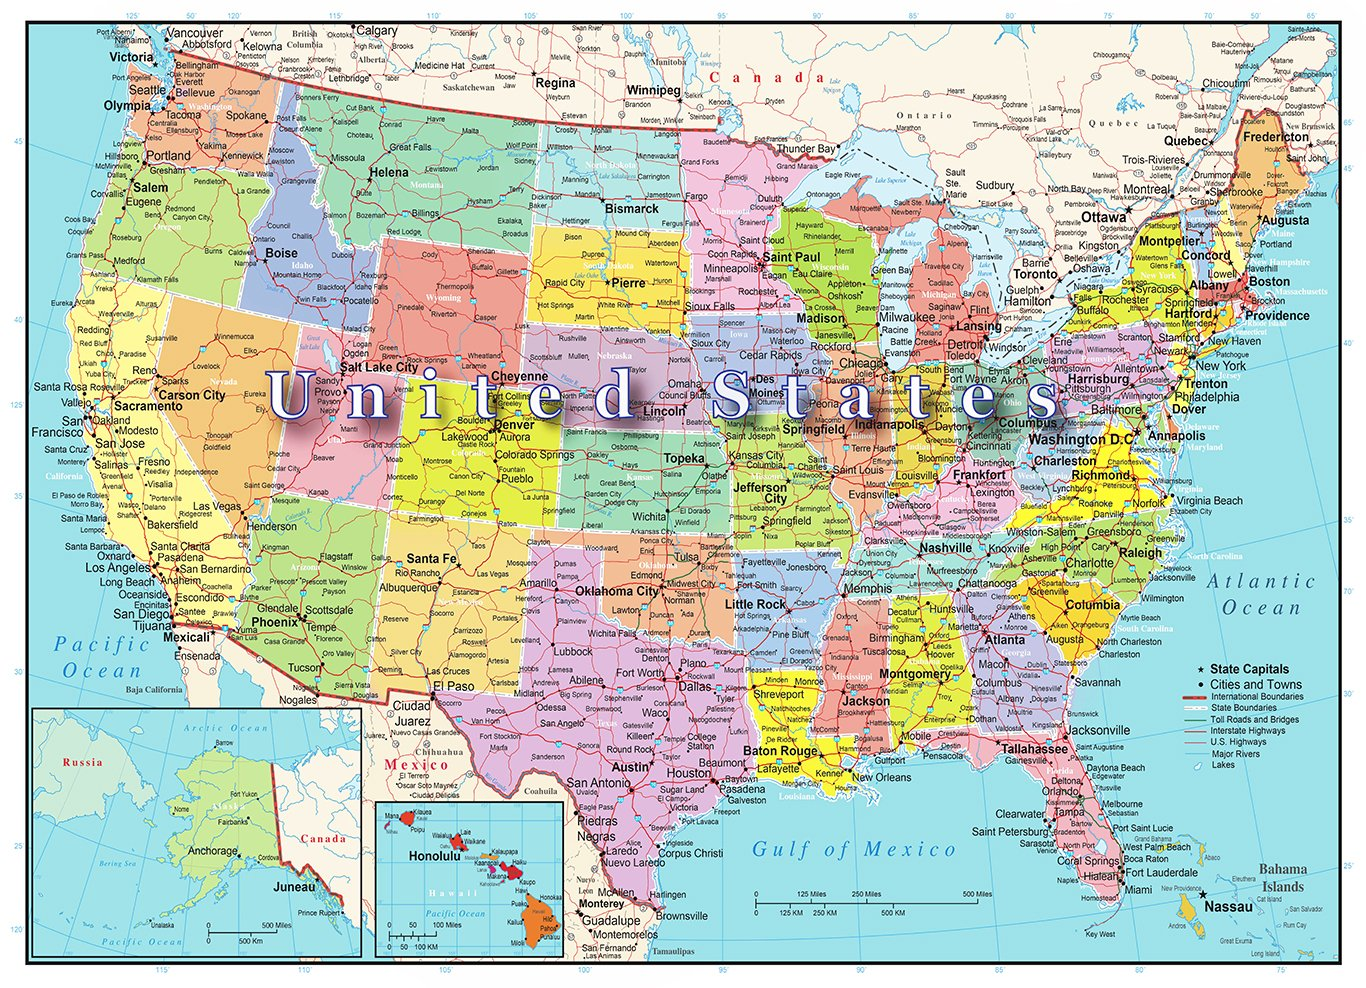 Amazoncom United States Of America Map Piece Jigsaw Puzzle - A picture of the united states of america map